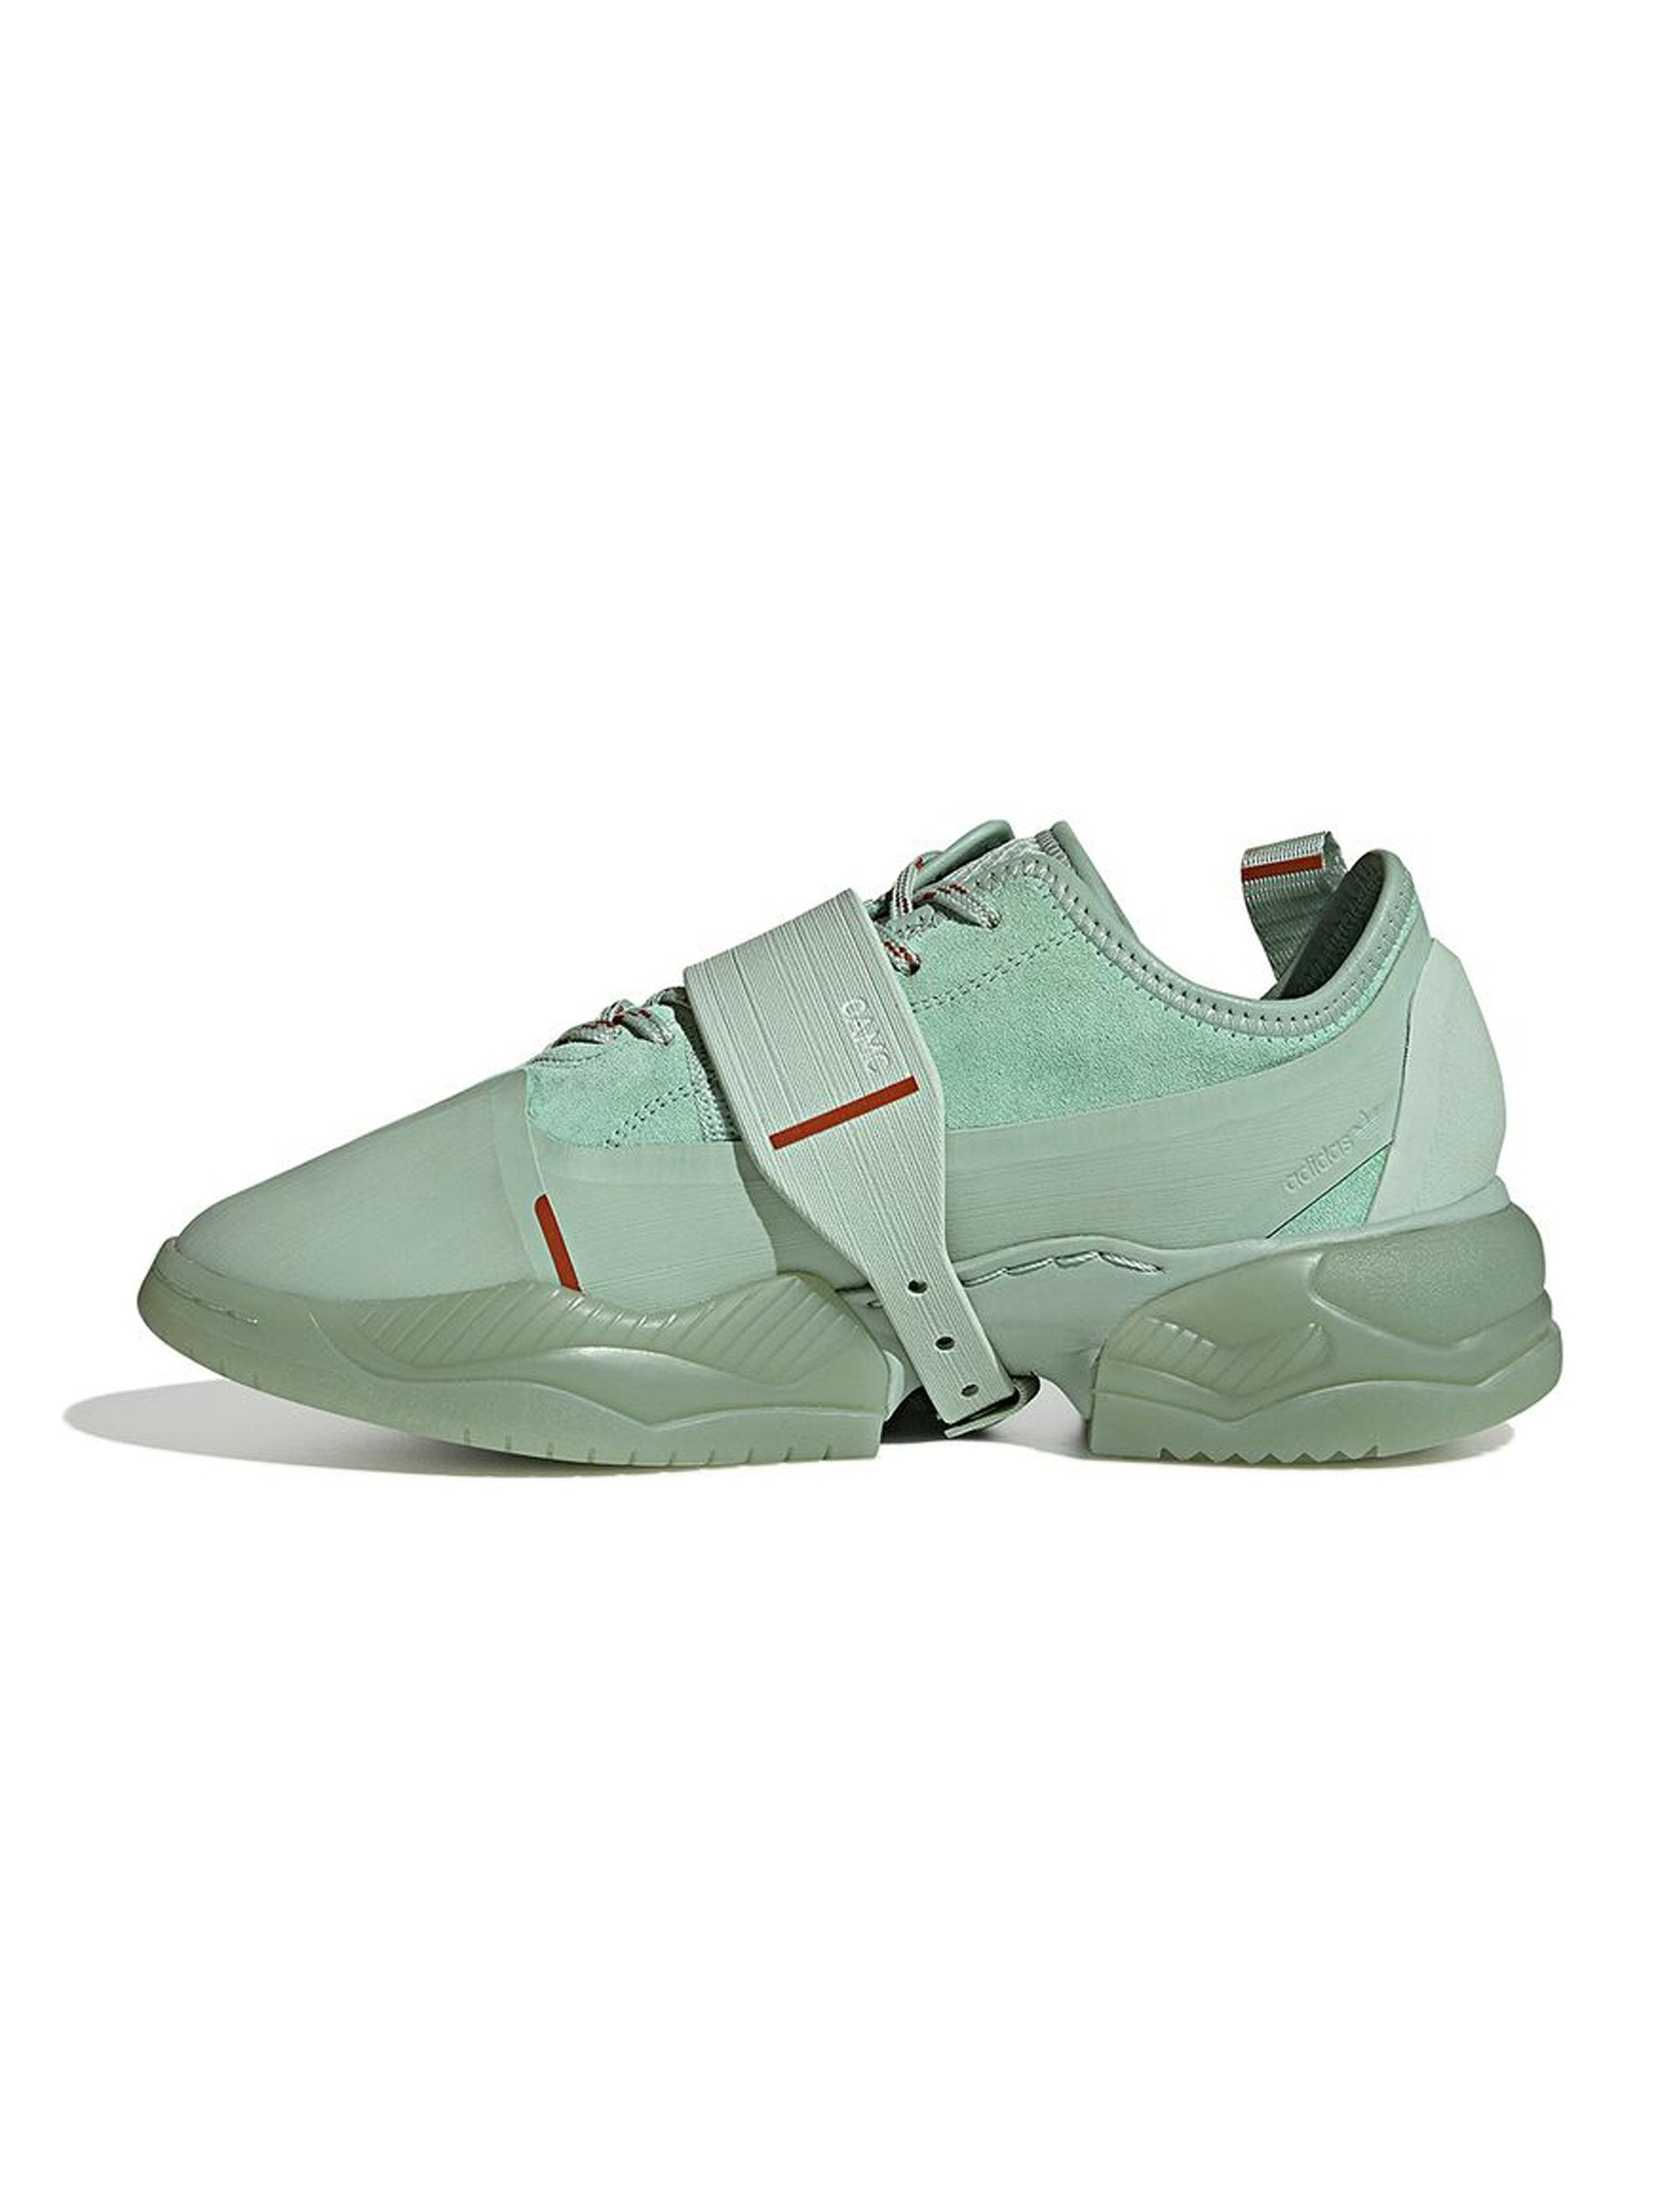 Medical Green OAMC x Adidas TYPE O-1S 3